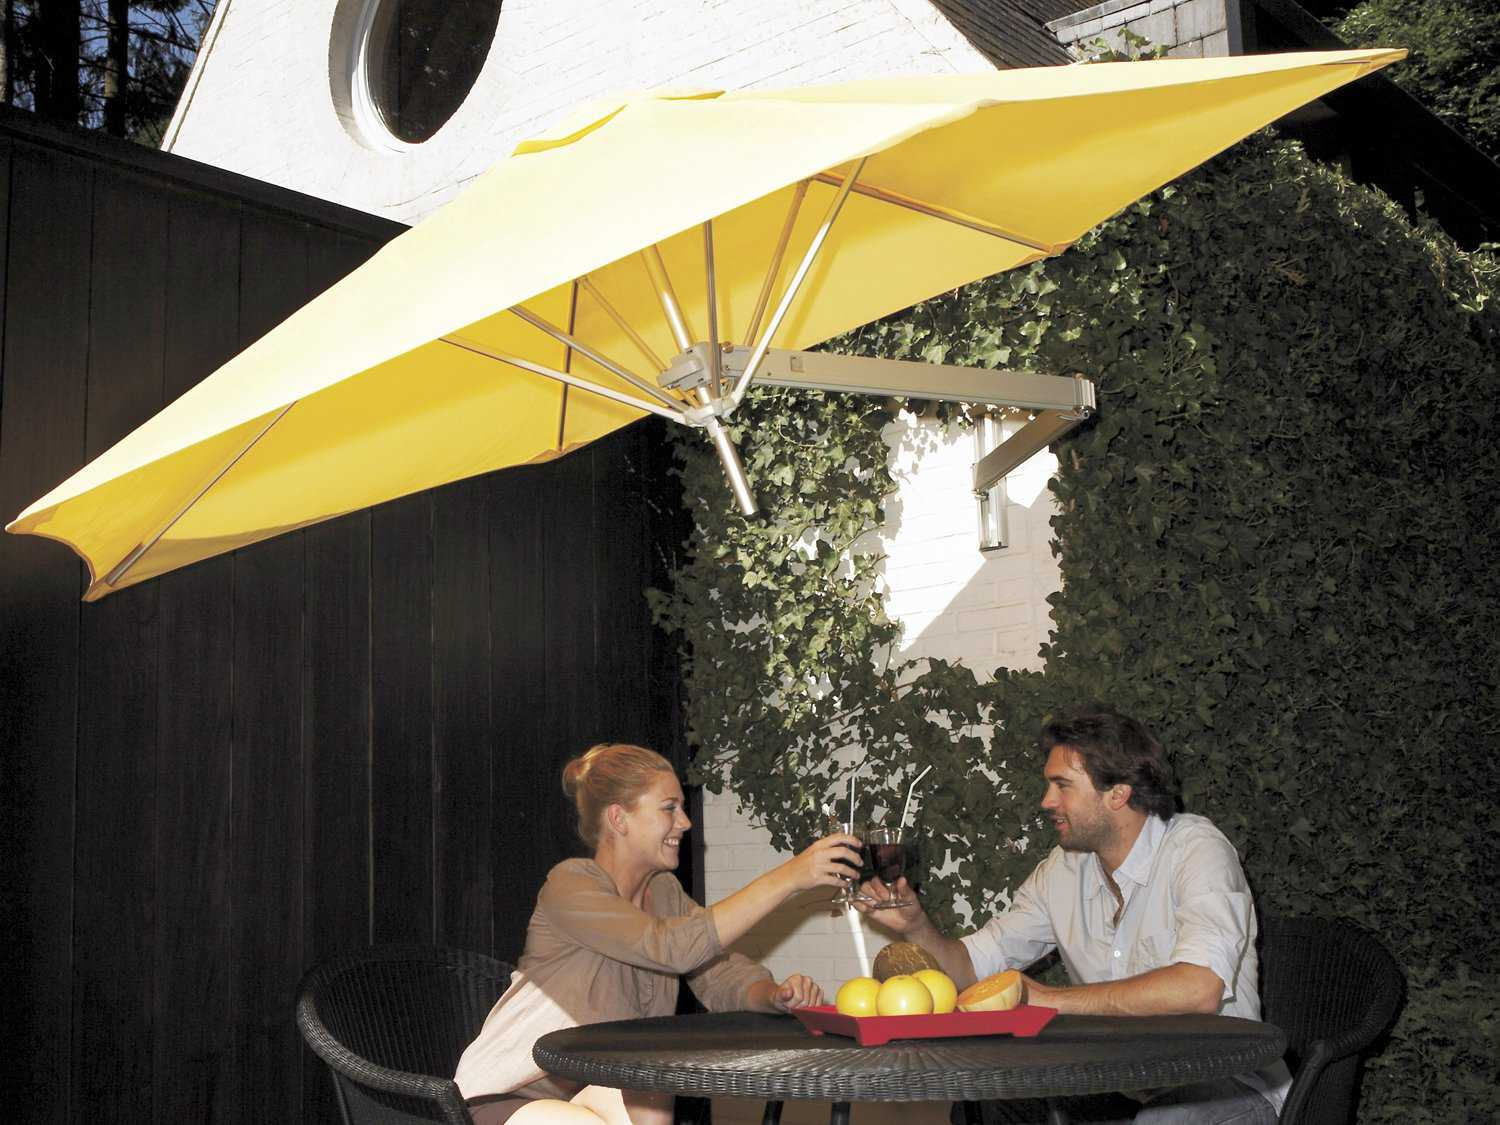 Luxury Umbrellas Paraflex Wallflex 9 Foot Push Lift Tilt